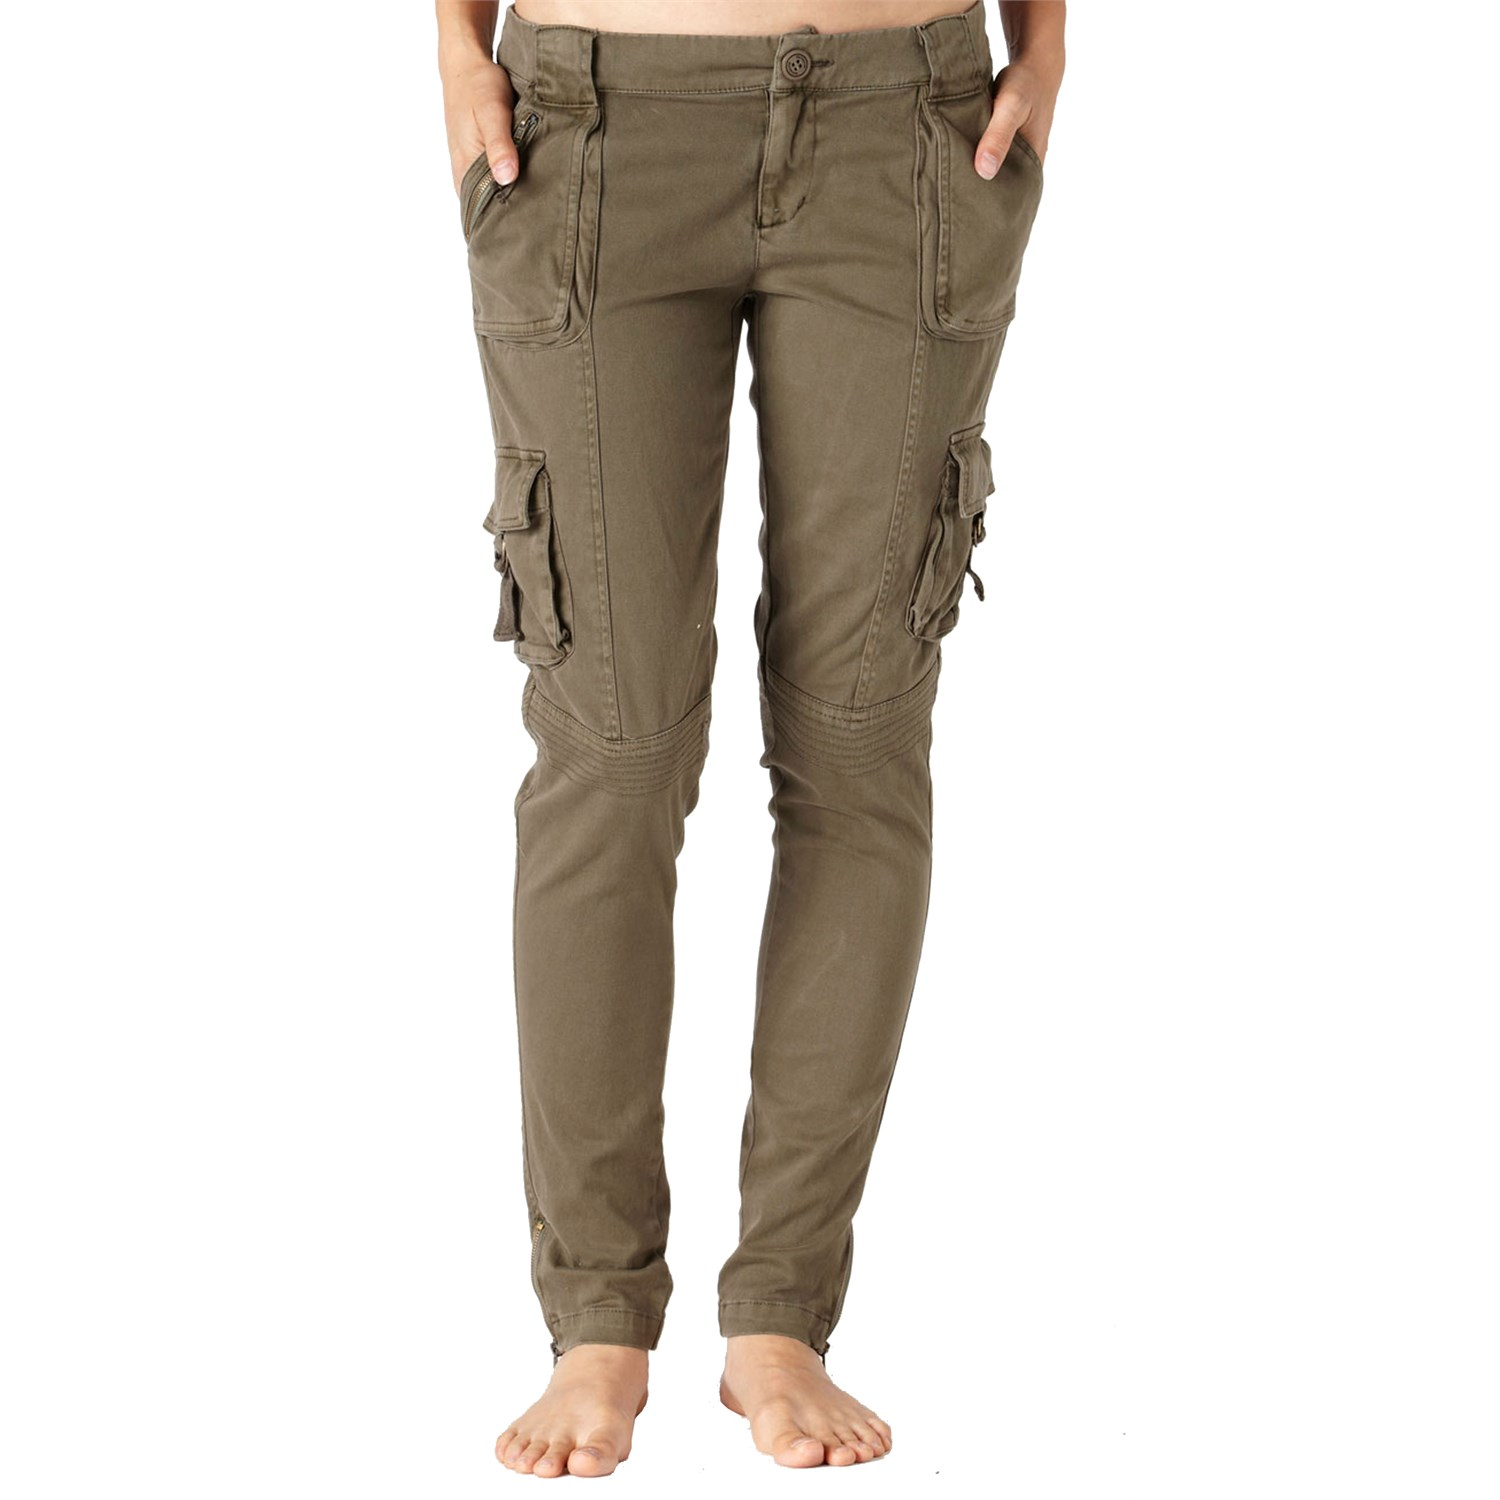 Shop for womens pants on sale at Cabela's. You will find the latest selection of womens clothing on sale including jeans and pants.